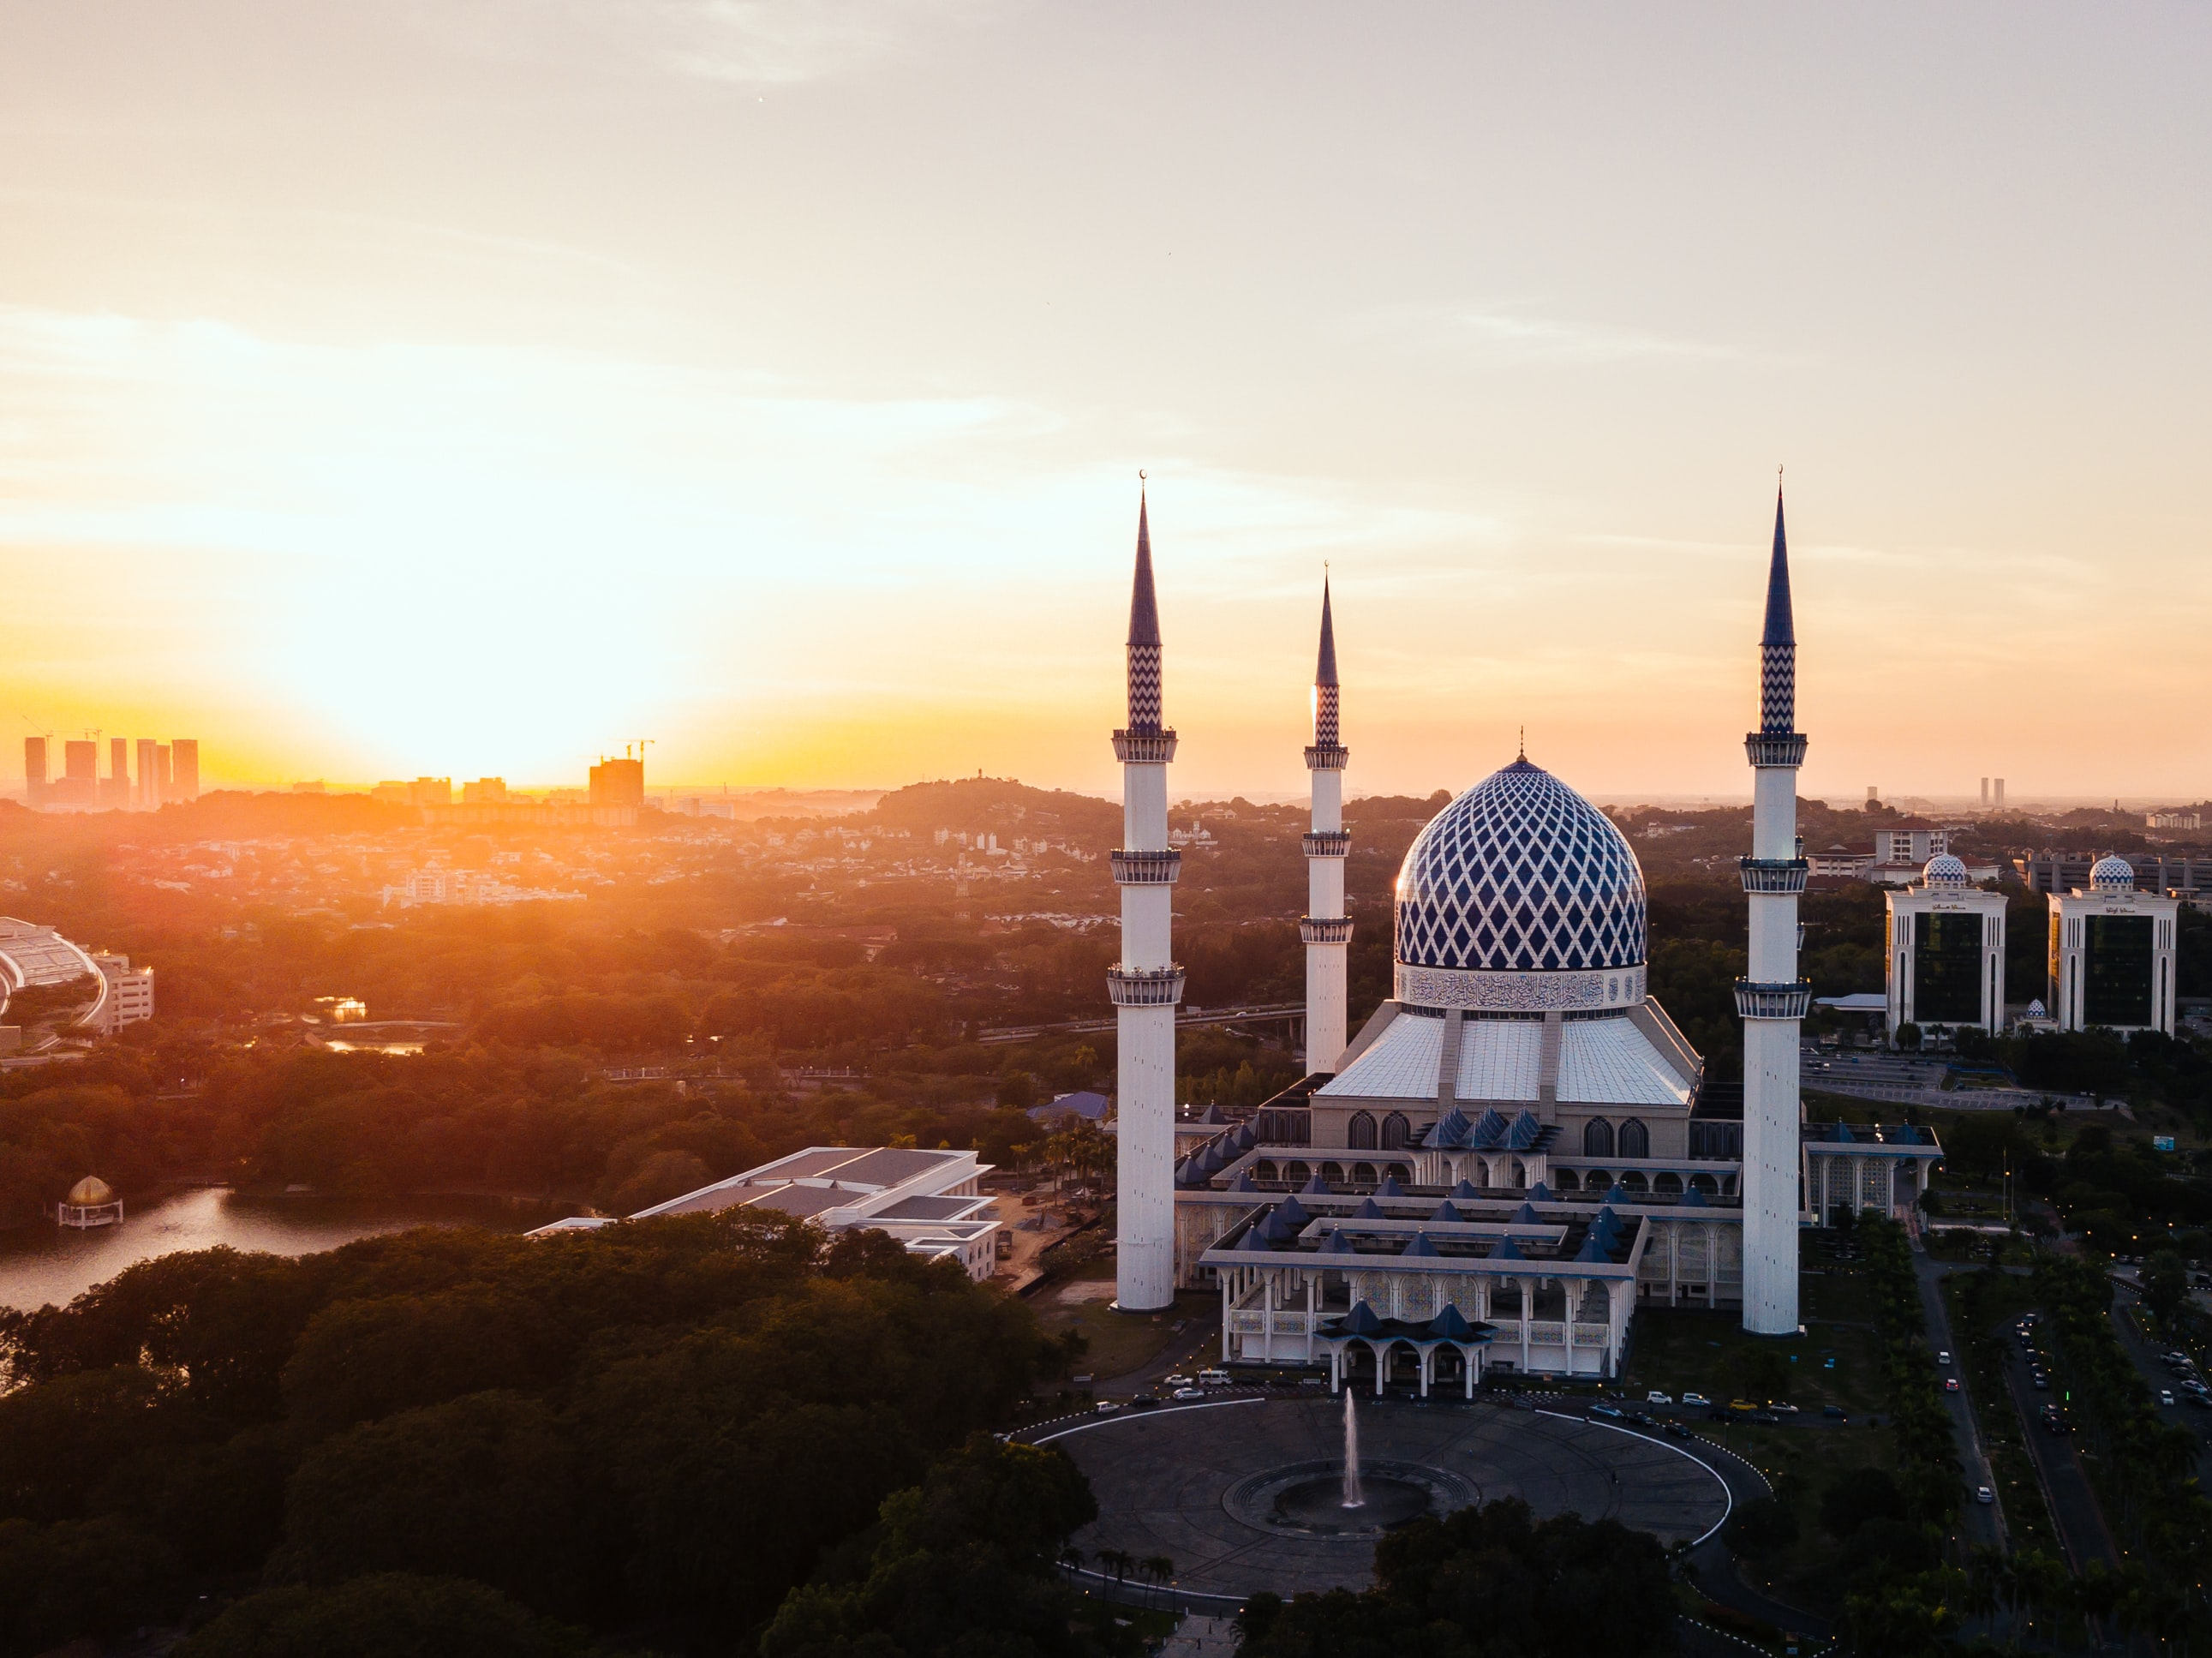 Mosque Pictures Hd Download Free Images On Unsplash